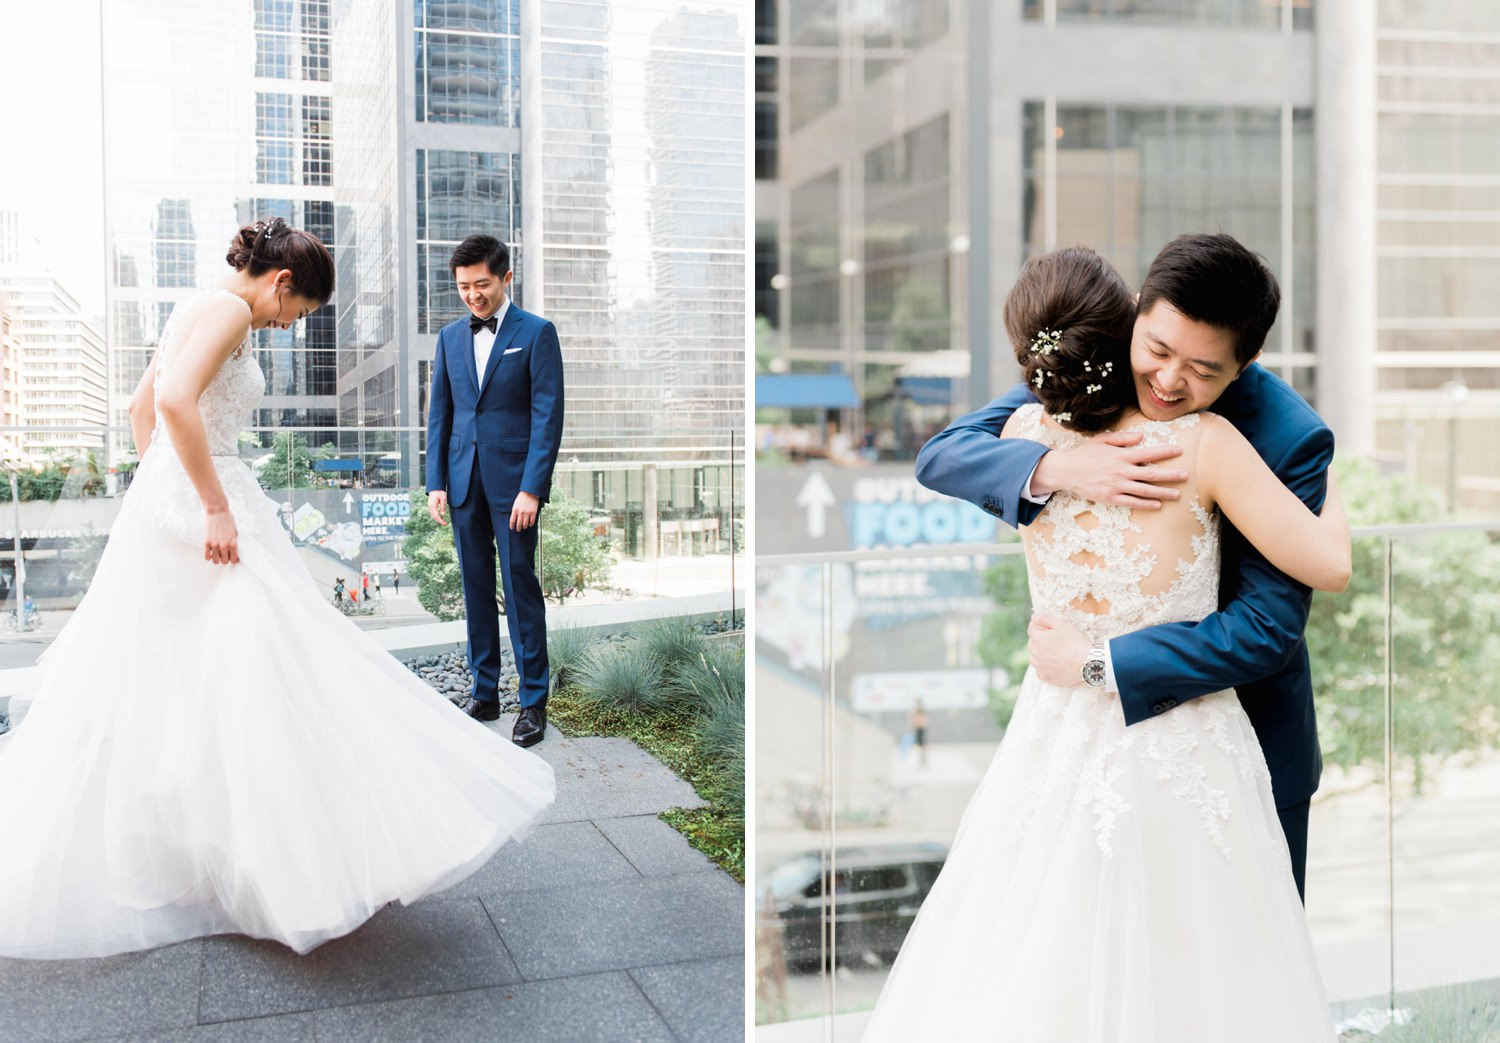 Bride and groom's first look at Shangri-La Hotel in Toronto